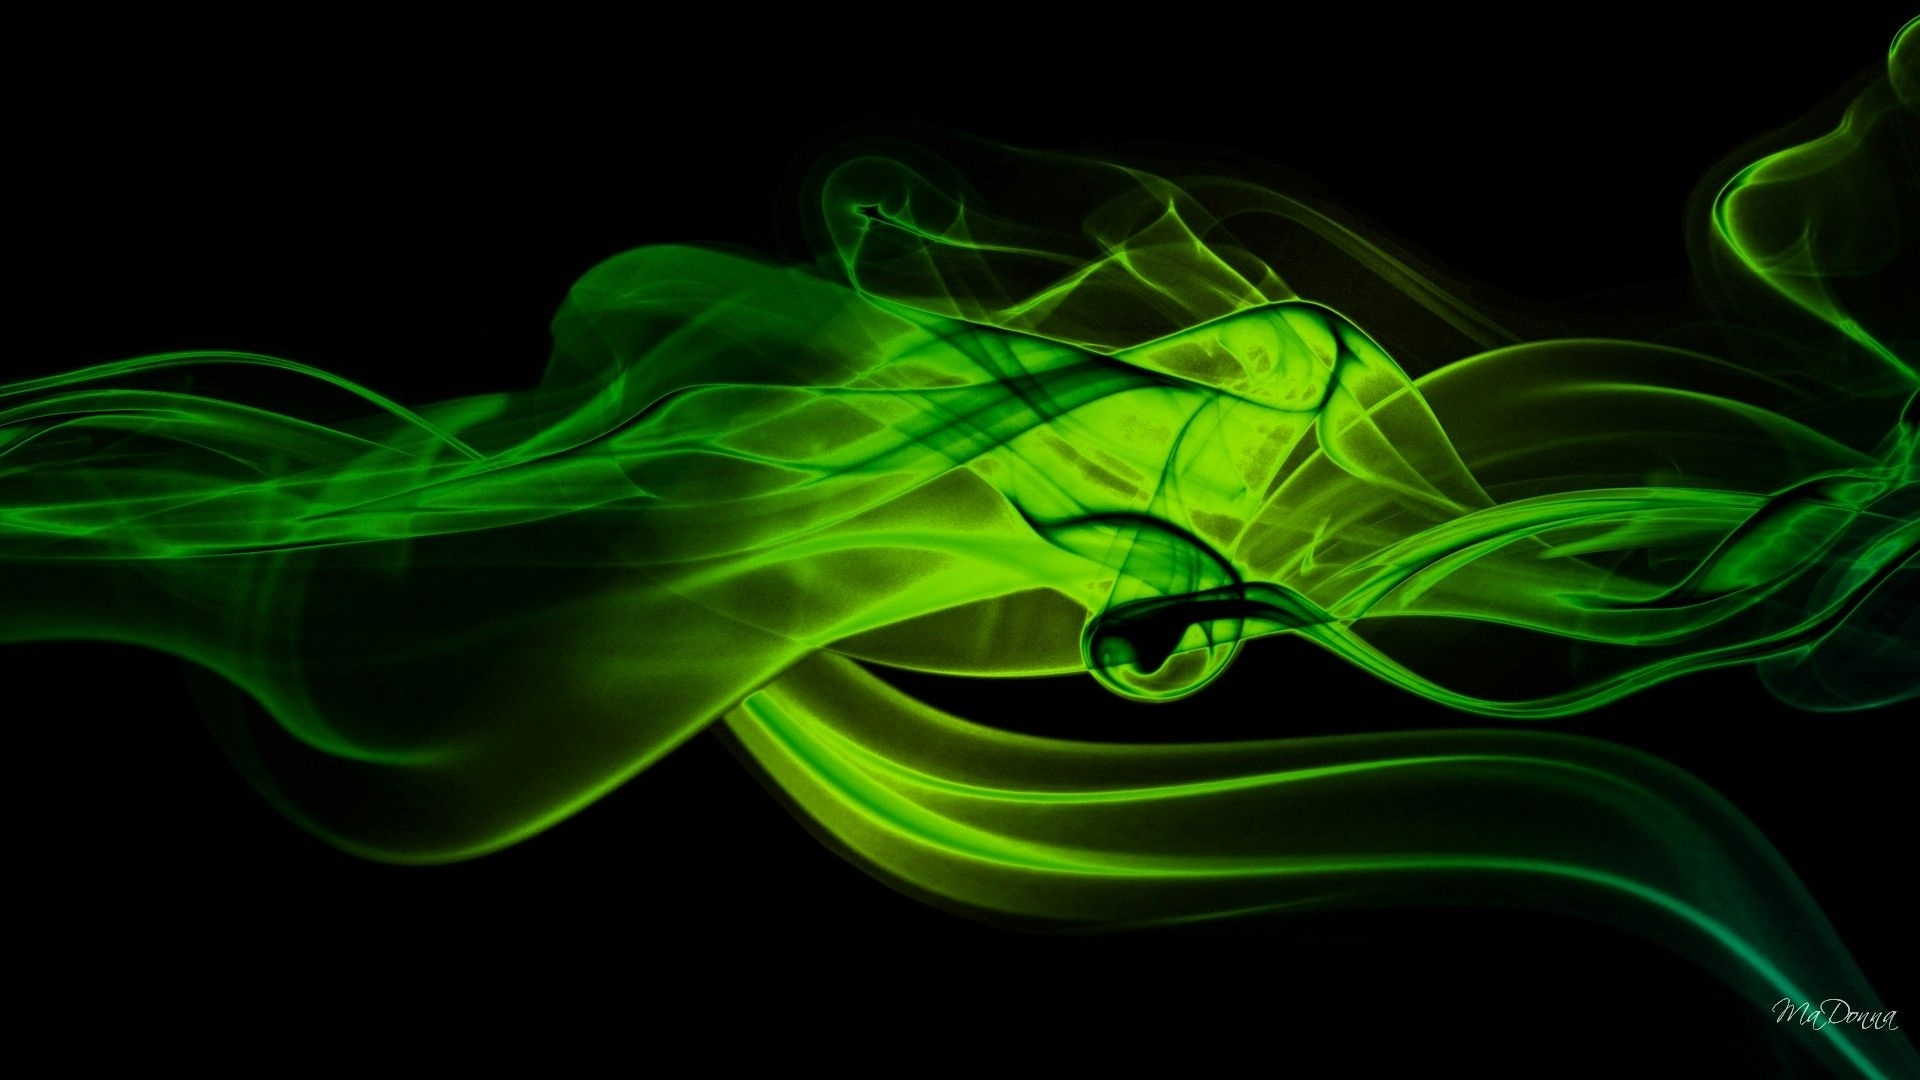 green d shape hd desktop wallpaper widescreen high definition